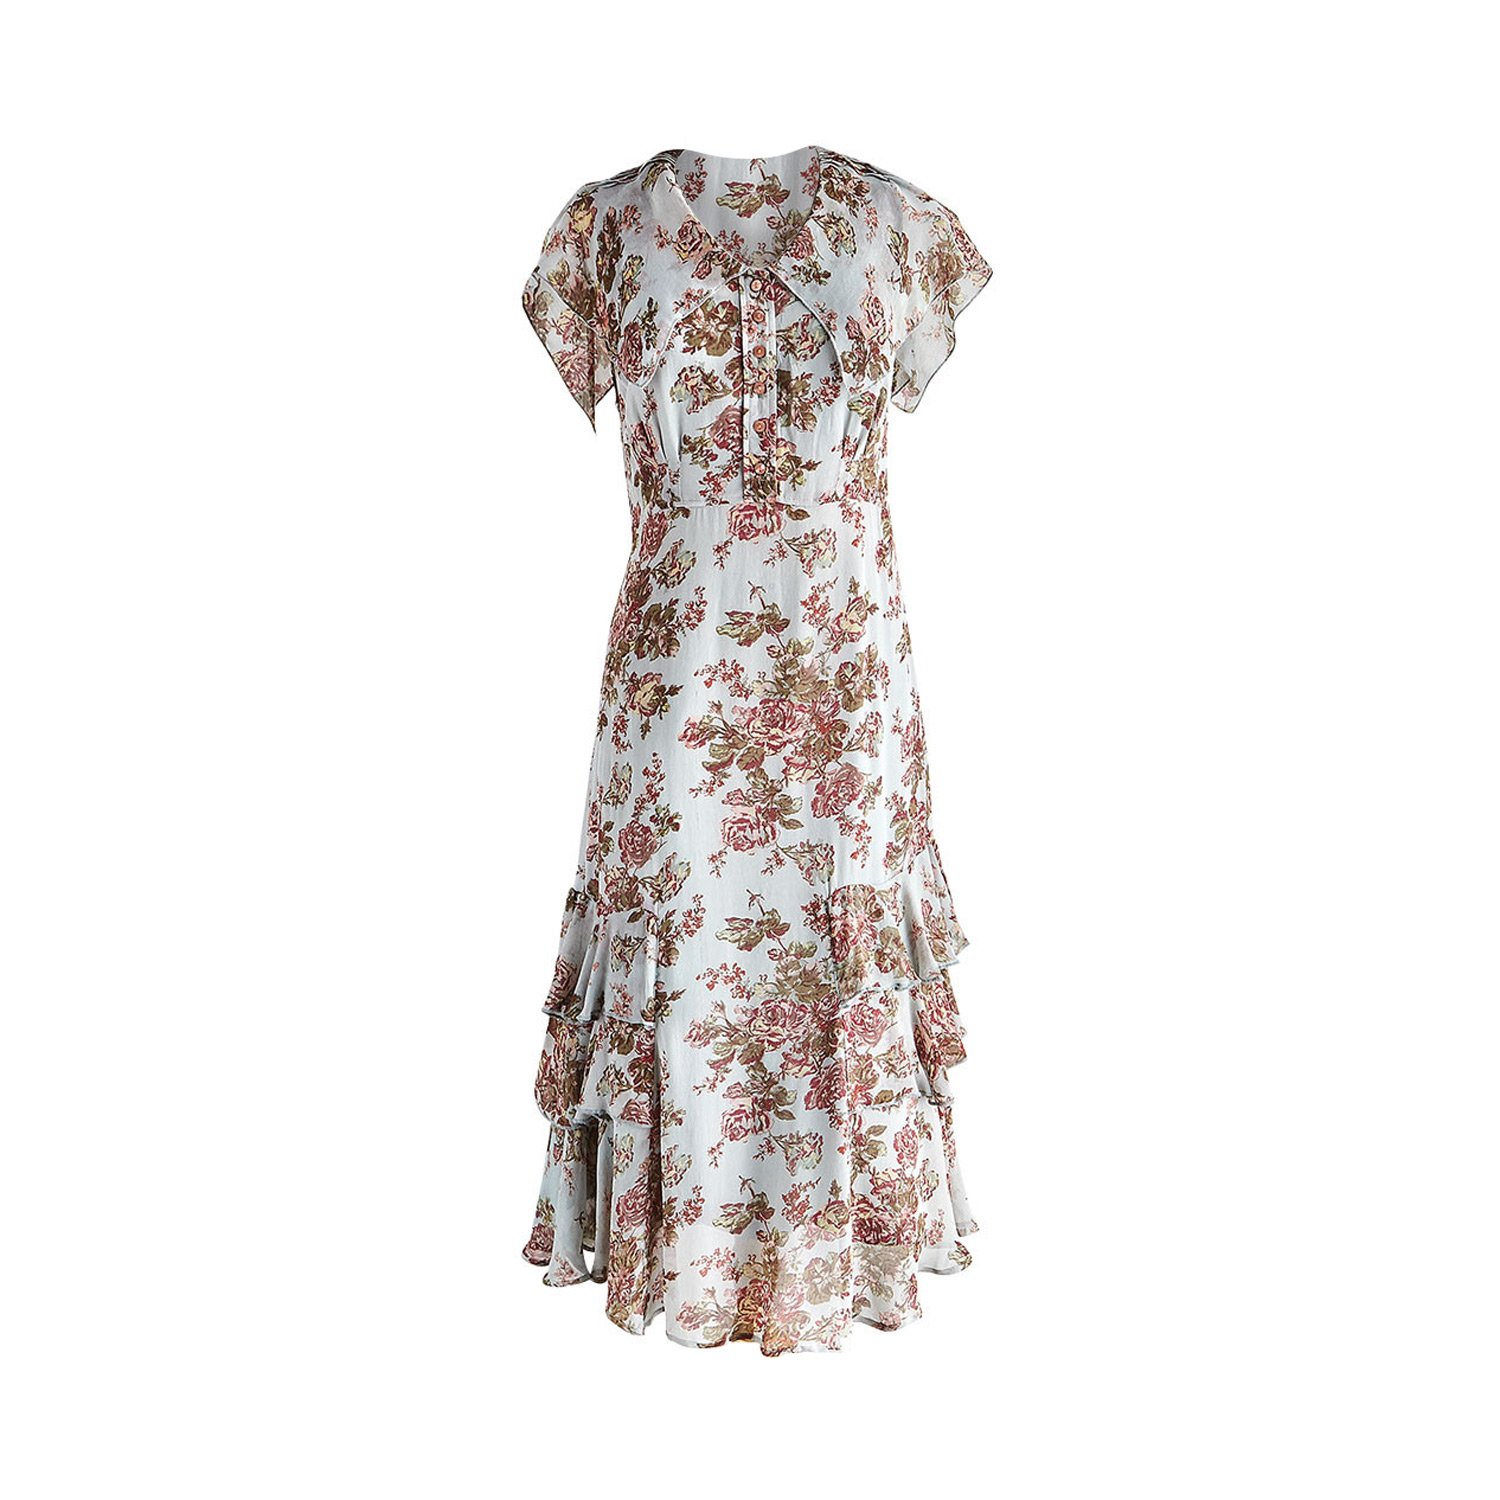 What Did Women Wear in the 1930s? April Cornell Womens Sleeveless Dress - Tea Length Floral Print - 44 Long $134.94 AT vintagedancer.com